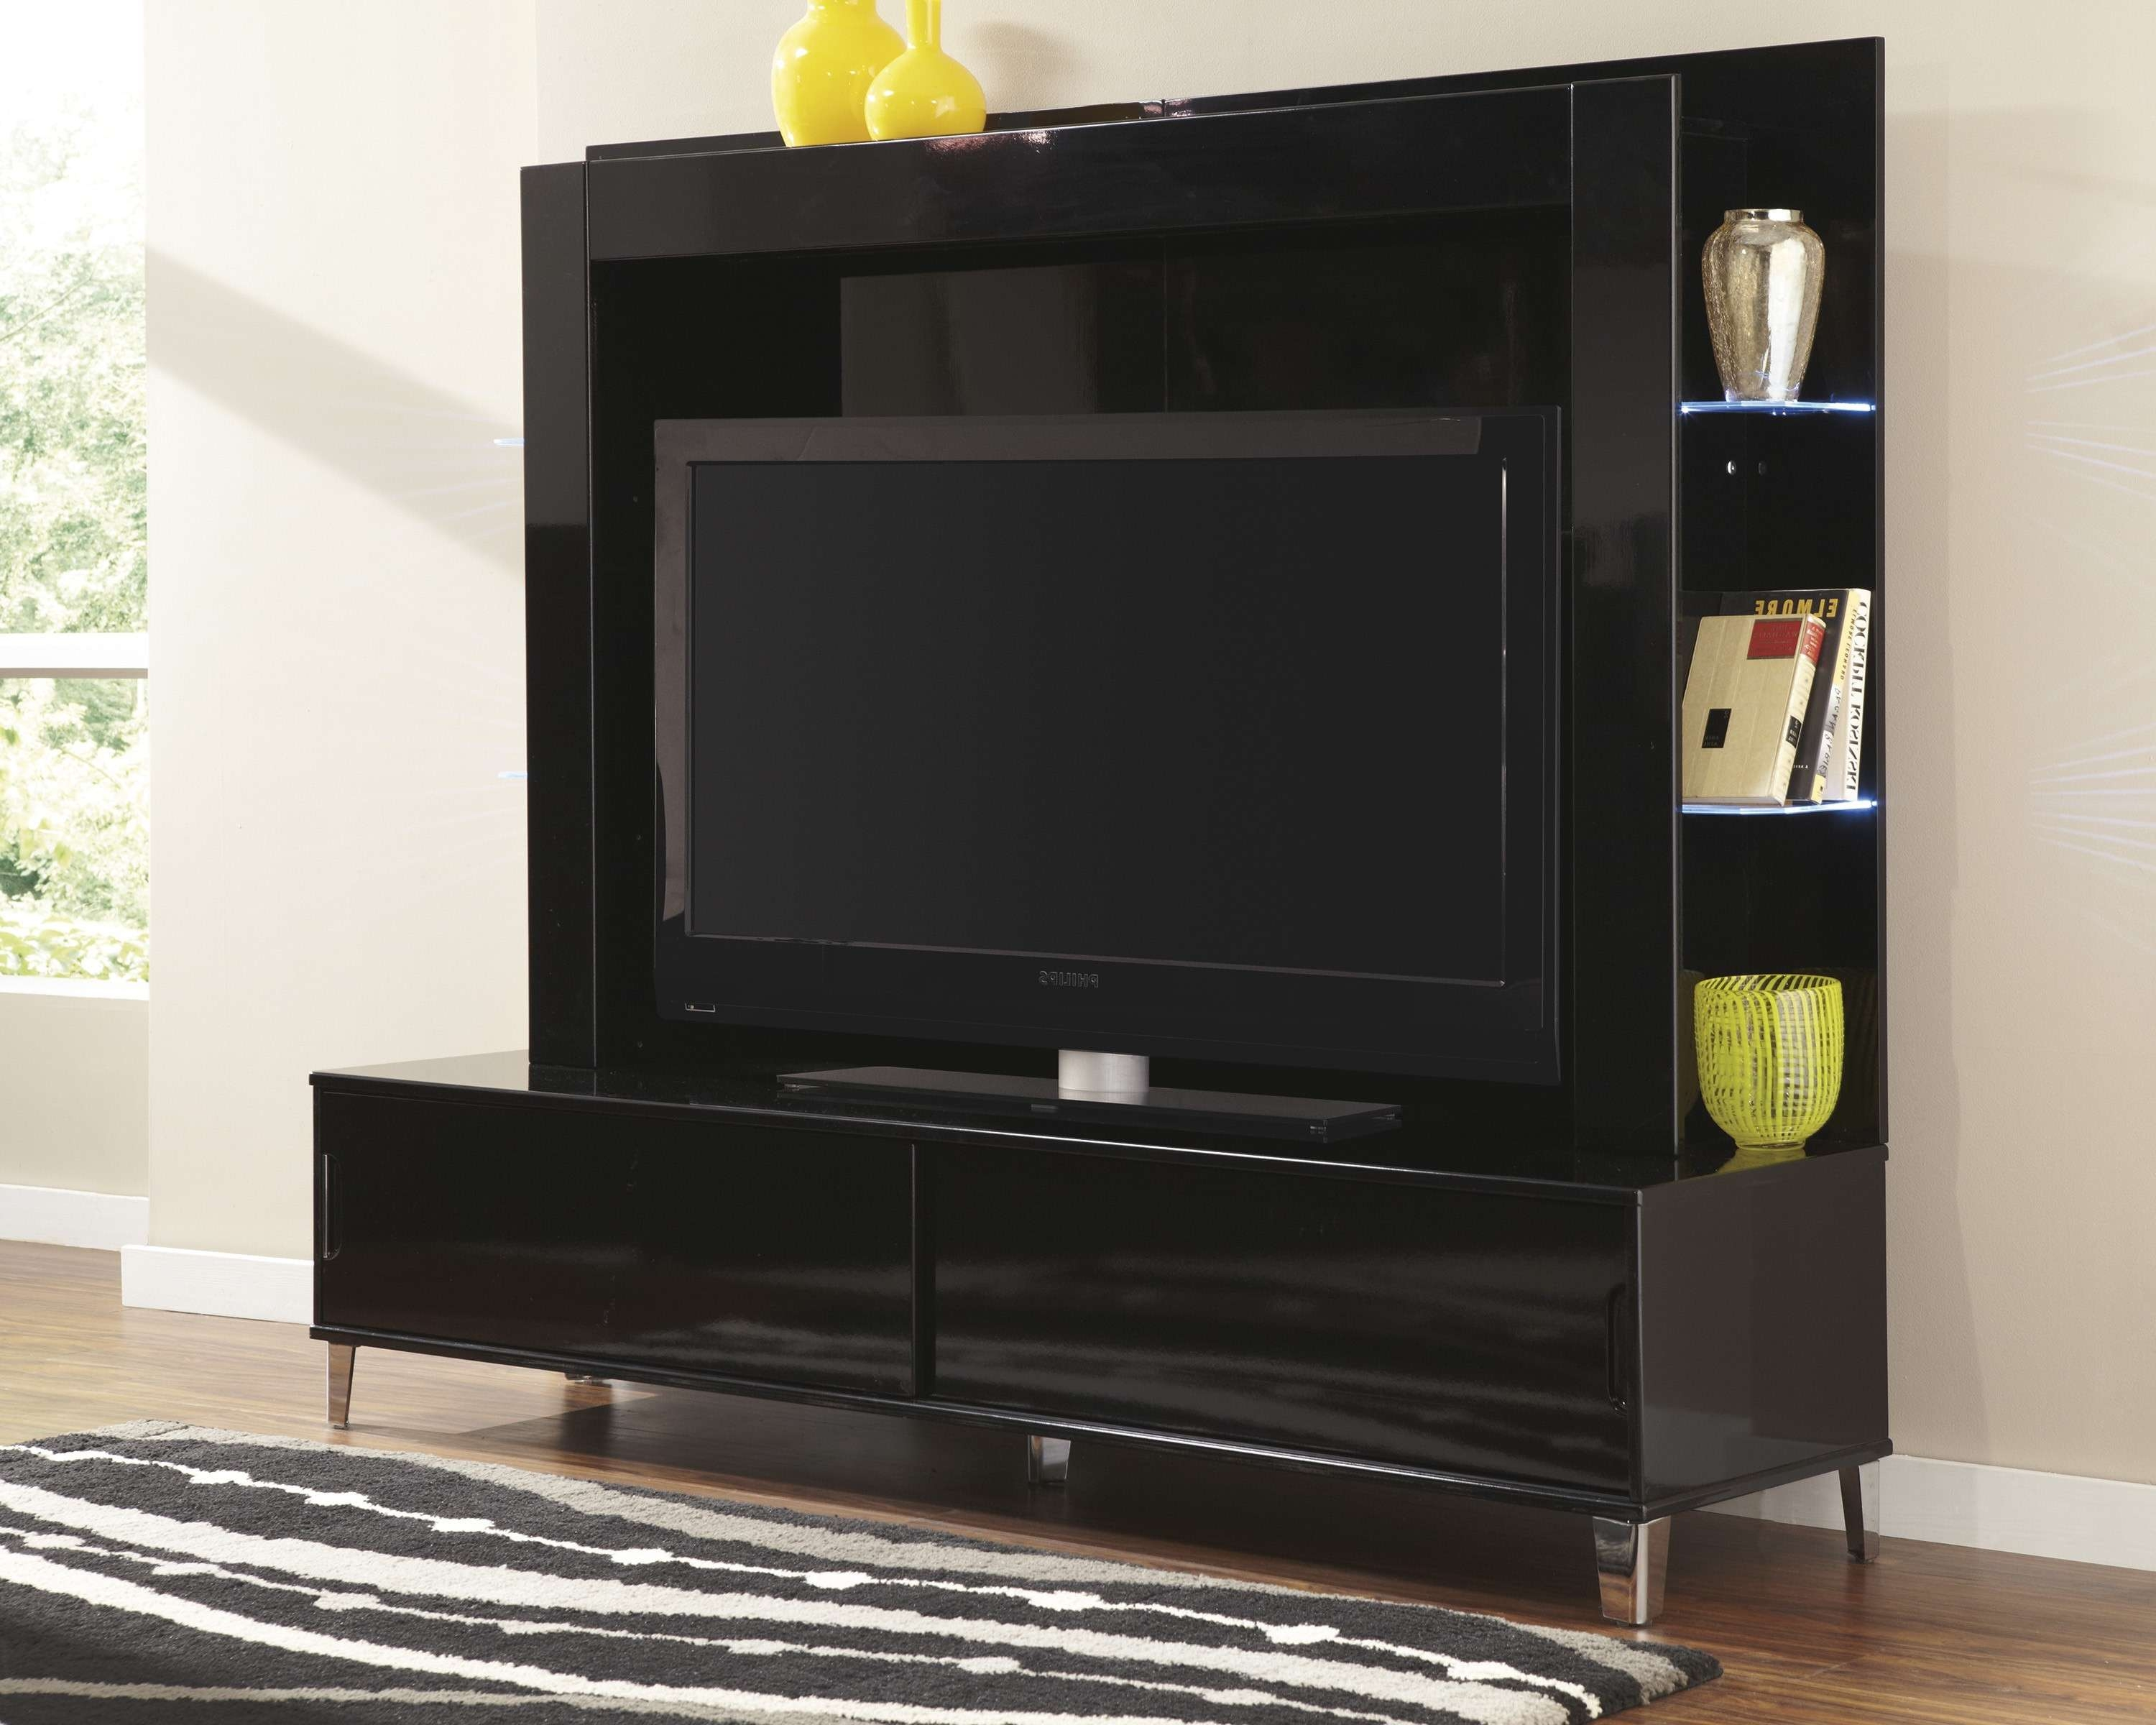 Double Bowl Carpet In Flat Screens Screen Tv Mount Stand Cream Throughout Tall Black Tv Cabinets (View 4 of 20)